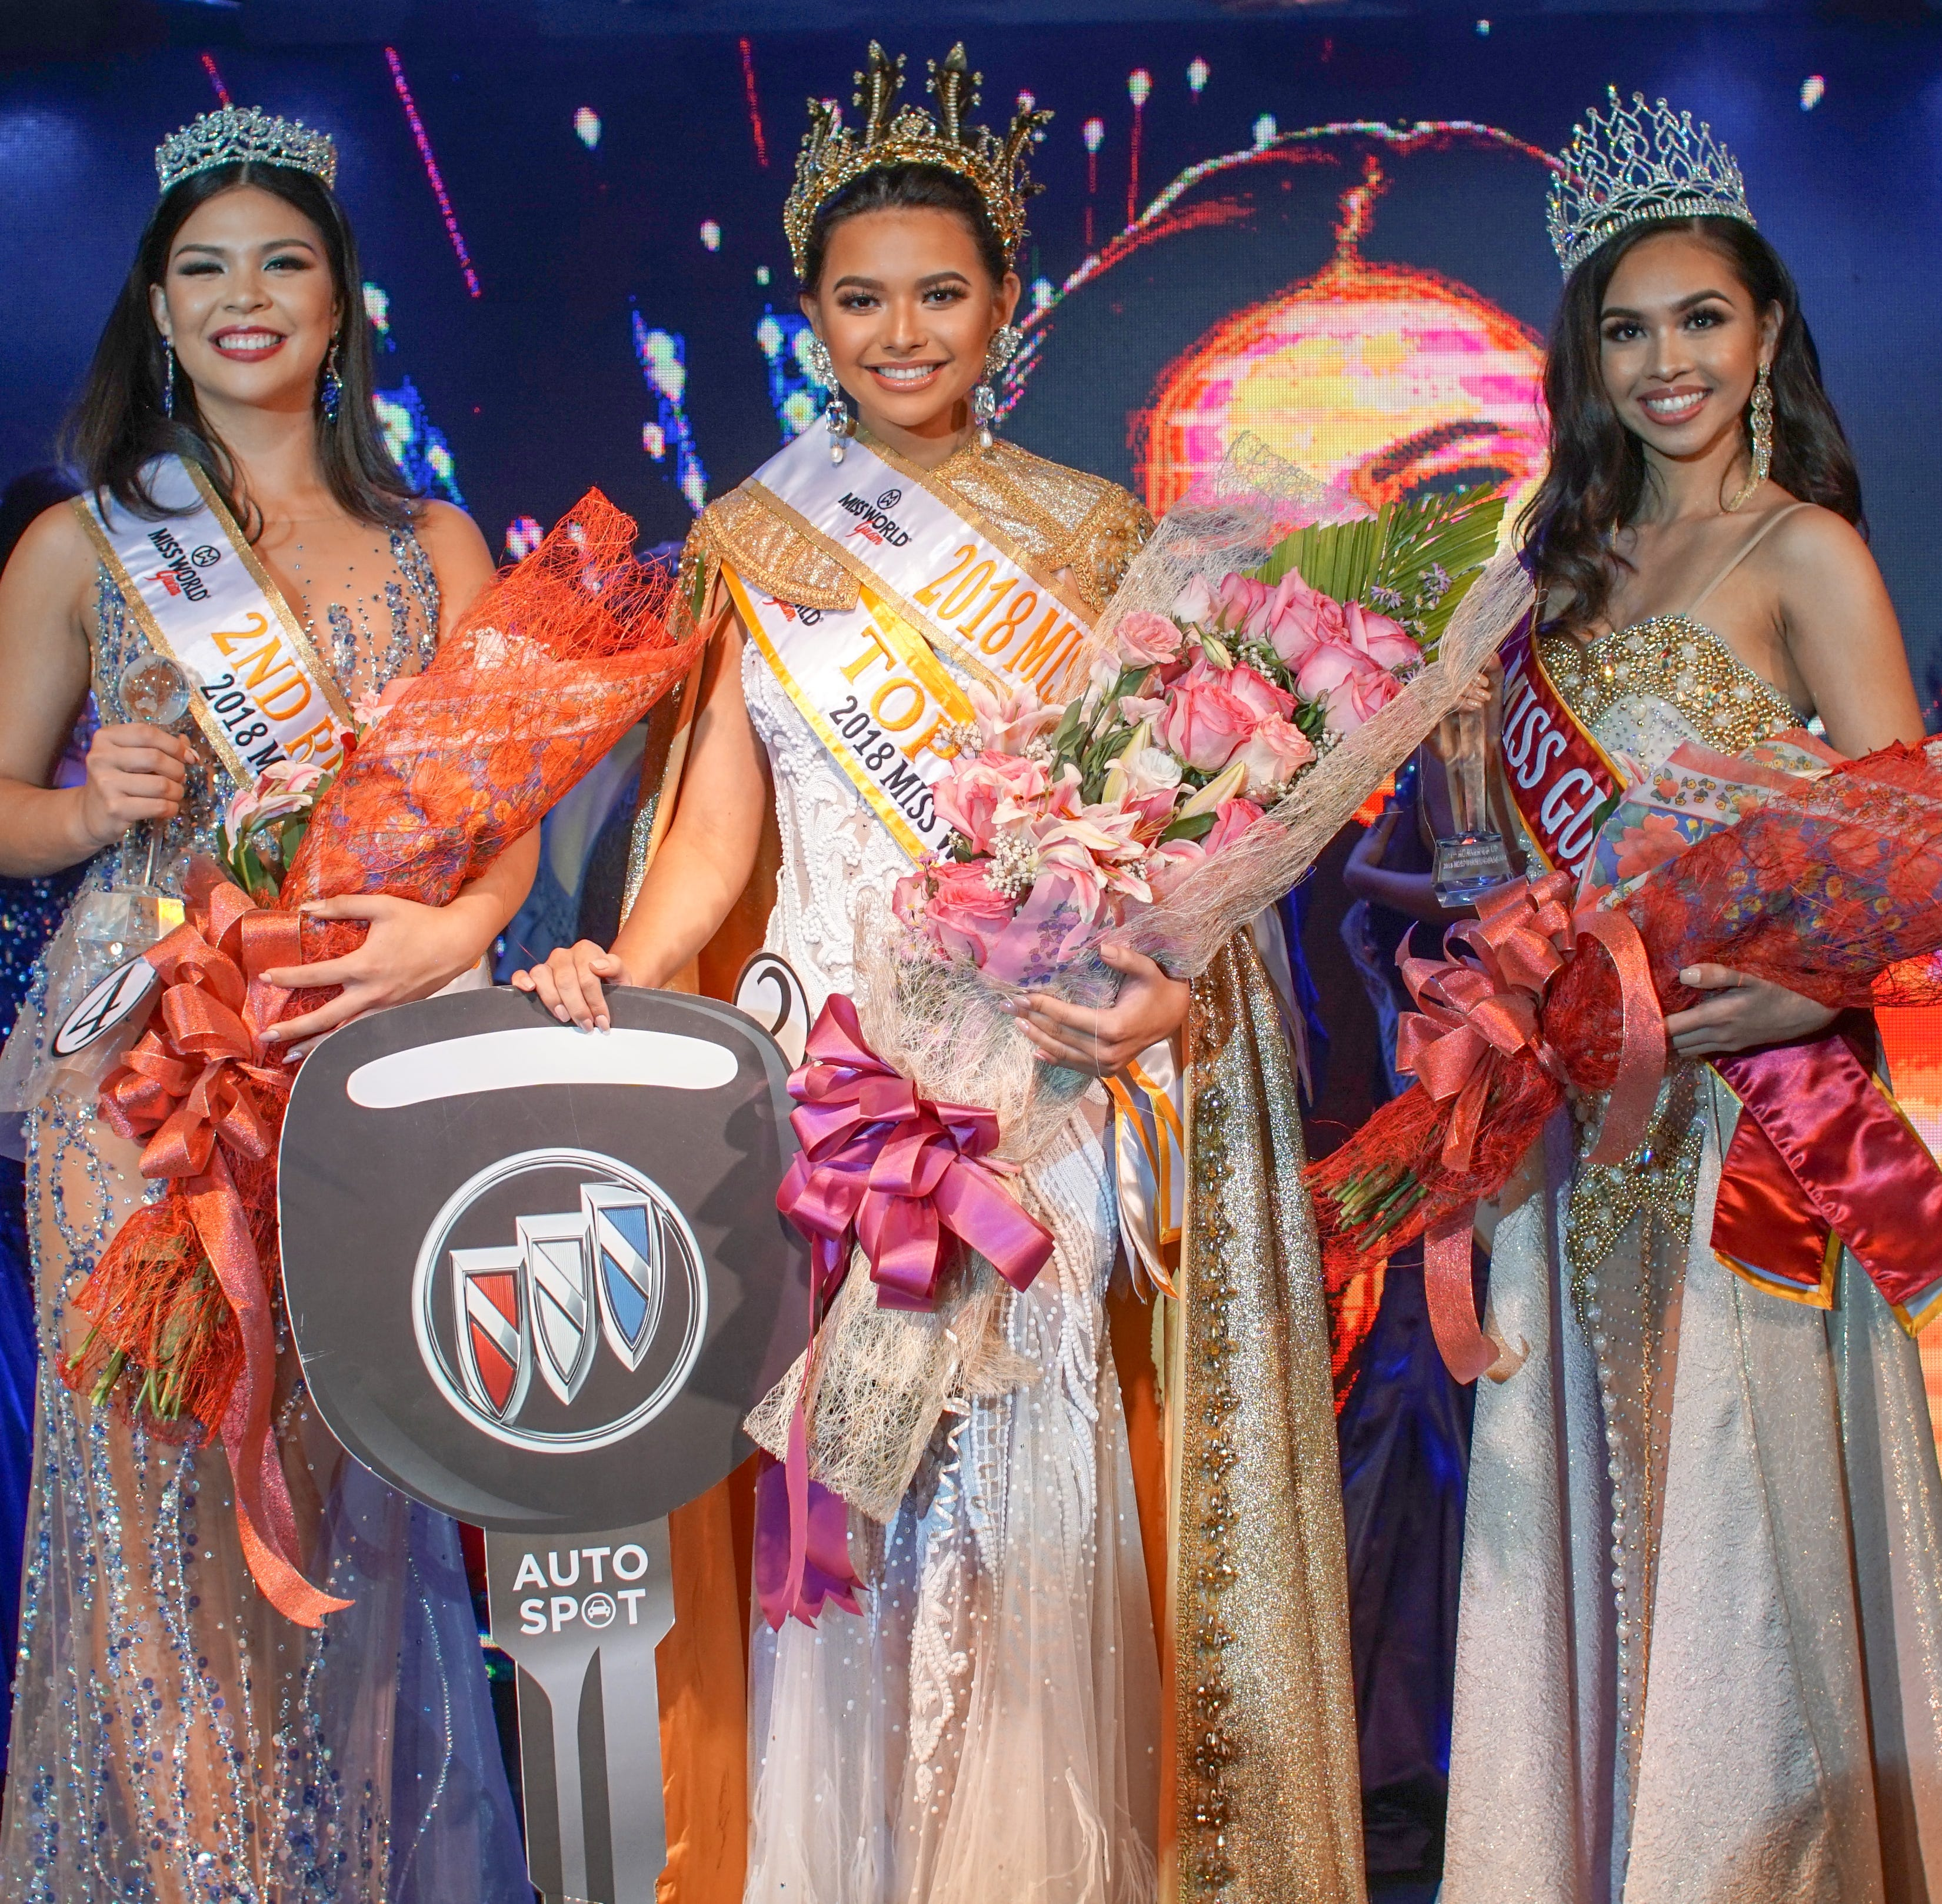 Gianna Sgambelluri crowned Miss Guam 2018